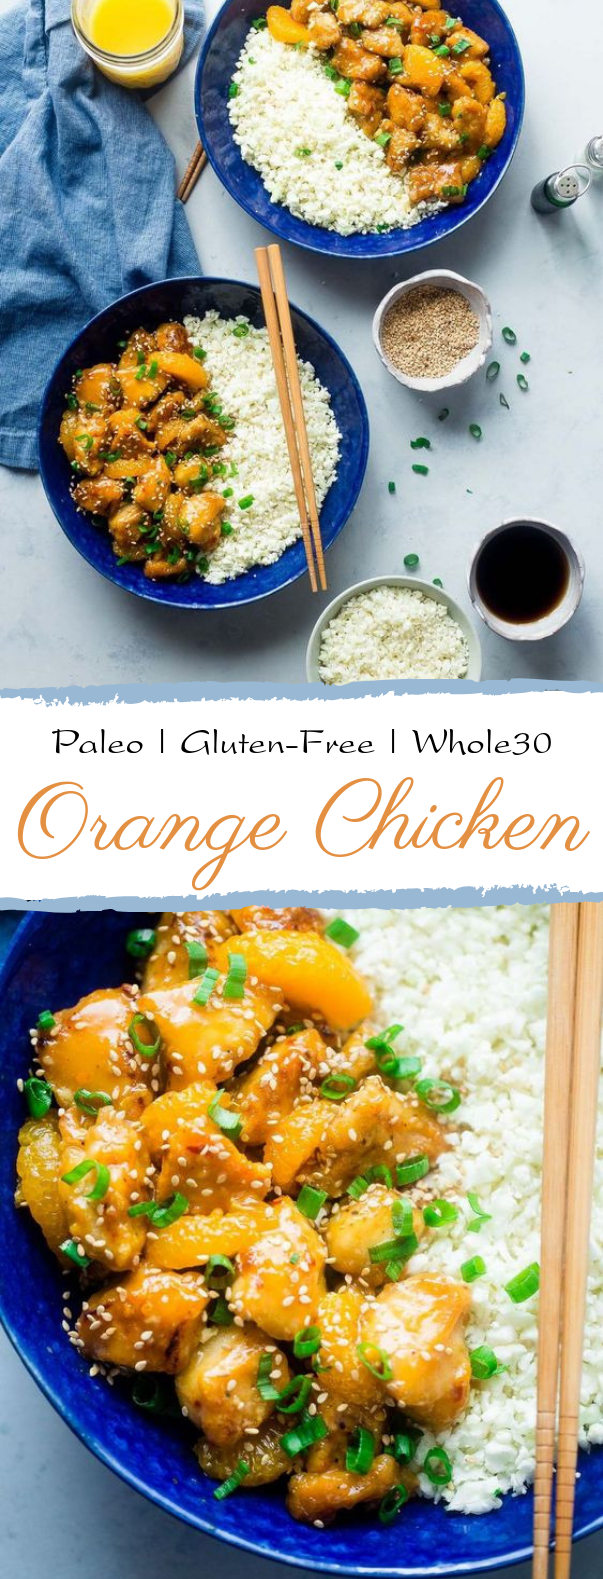 Paleo Orange Chicken #glutenfree #healthy